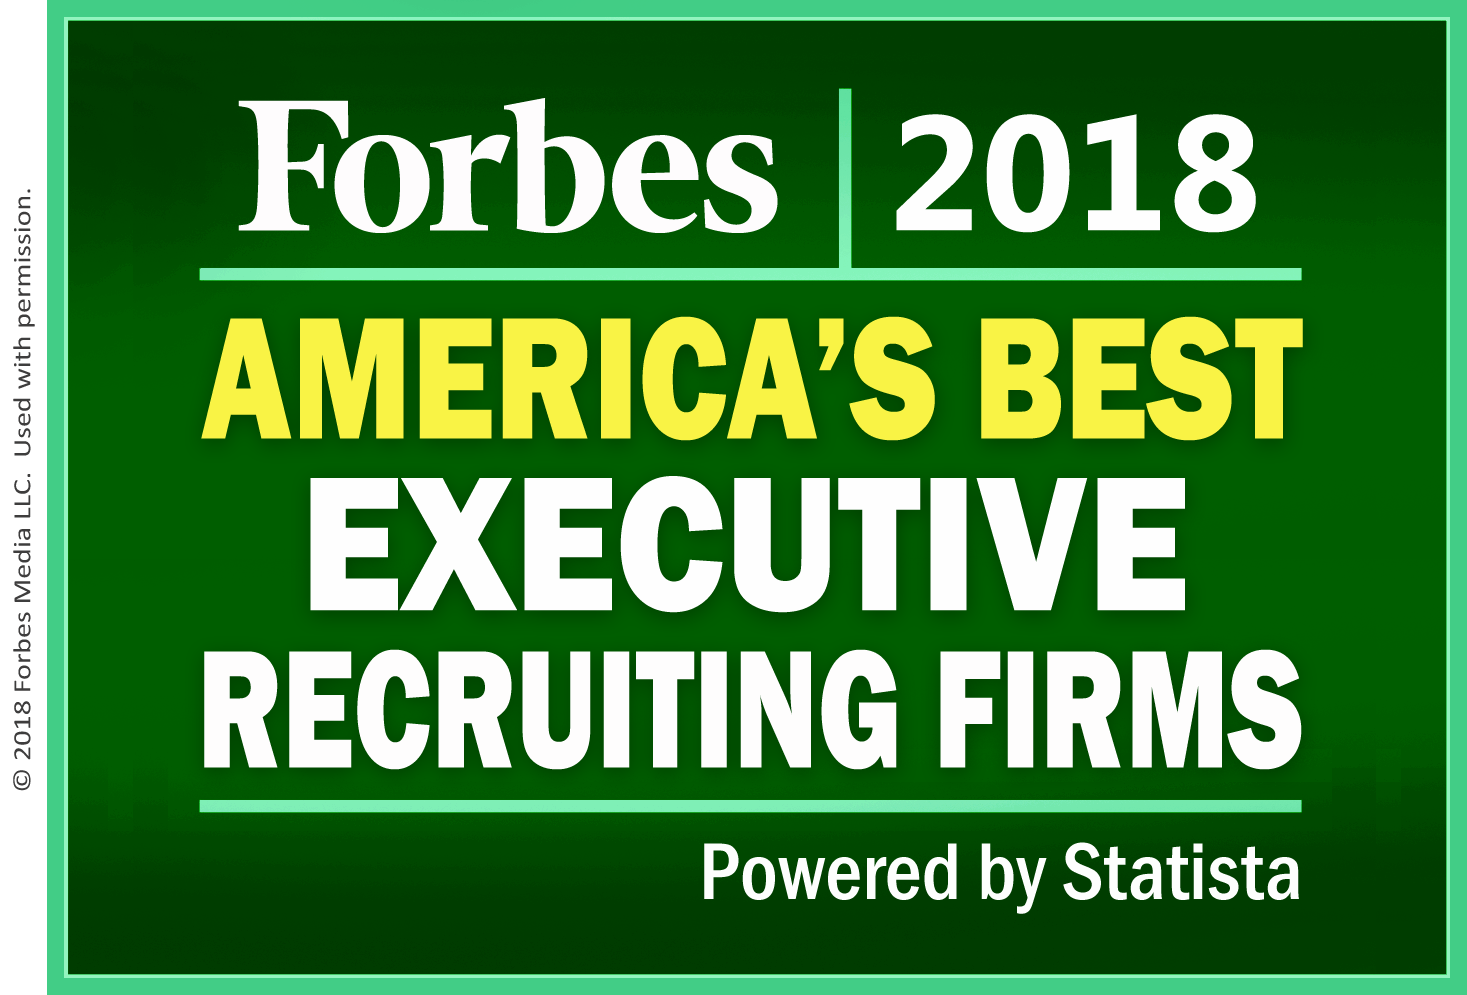 Best_Recruiting Firms 2018_w Copyright wide